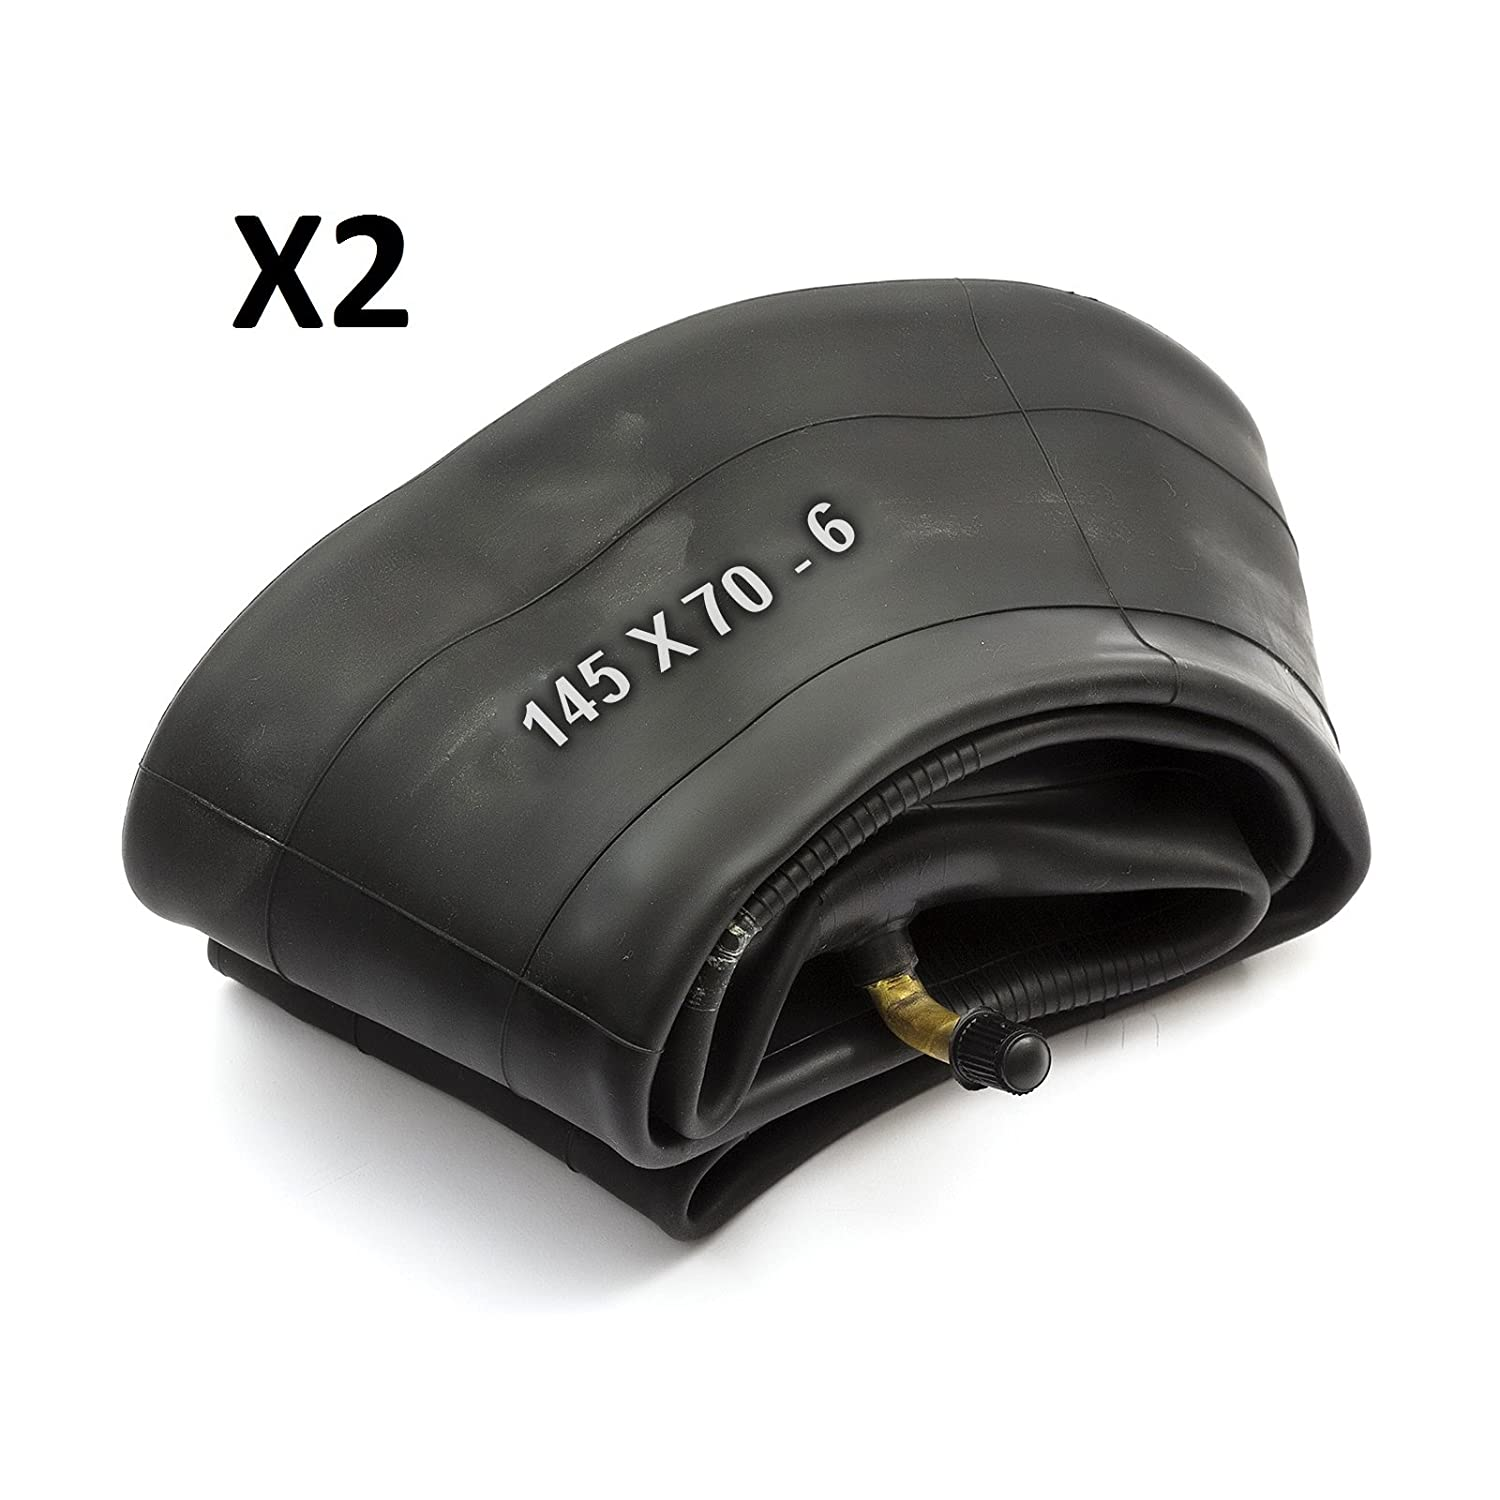 2 X Innertube 145x7.00-6 145x70-6 4.00-6 5.00-6 4.00/5.00-6 13x5.00-6 Sit Down Lawnmower 6 inch 6'' Countax Westwood 90 Degree Bent Valve Schradar PetrolScooter